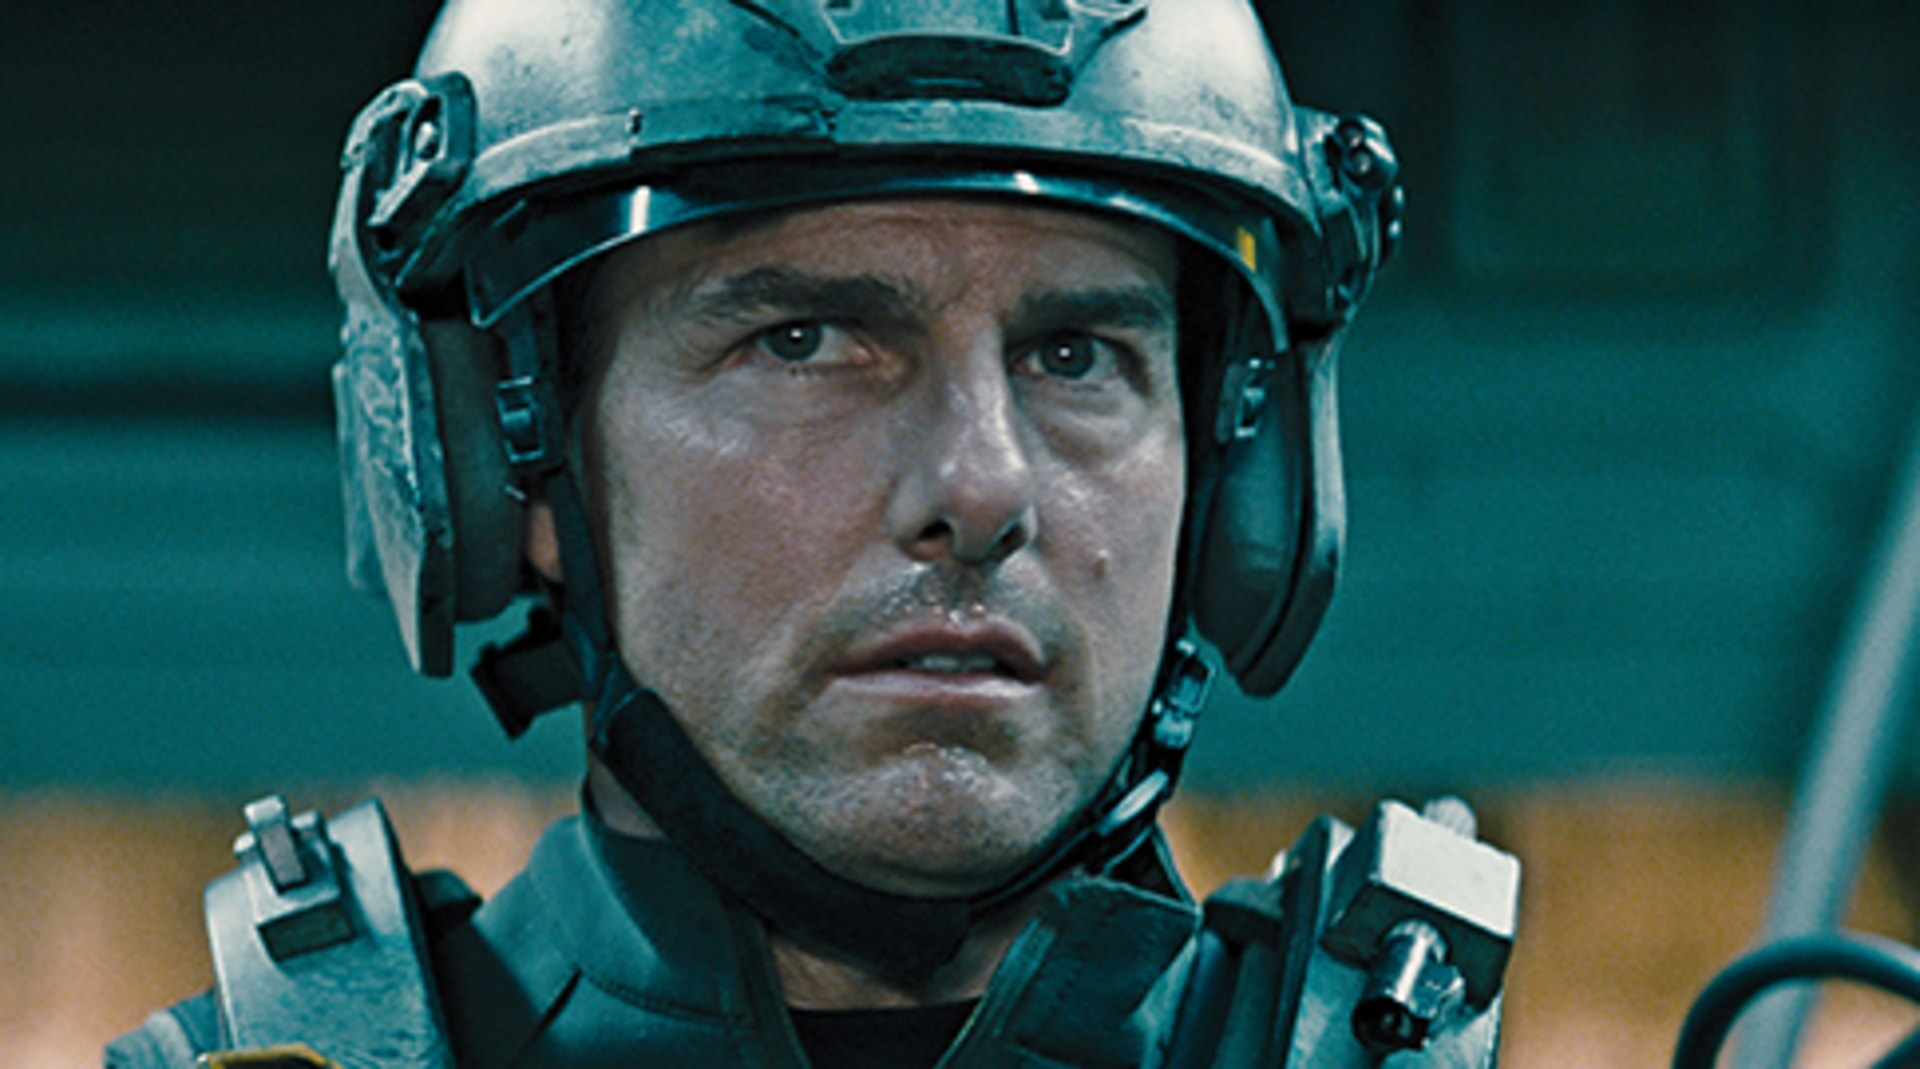 Edge of Tomorrow - Image 22